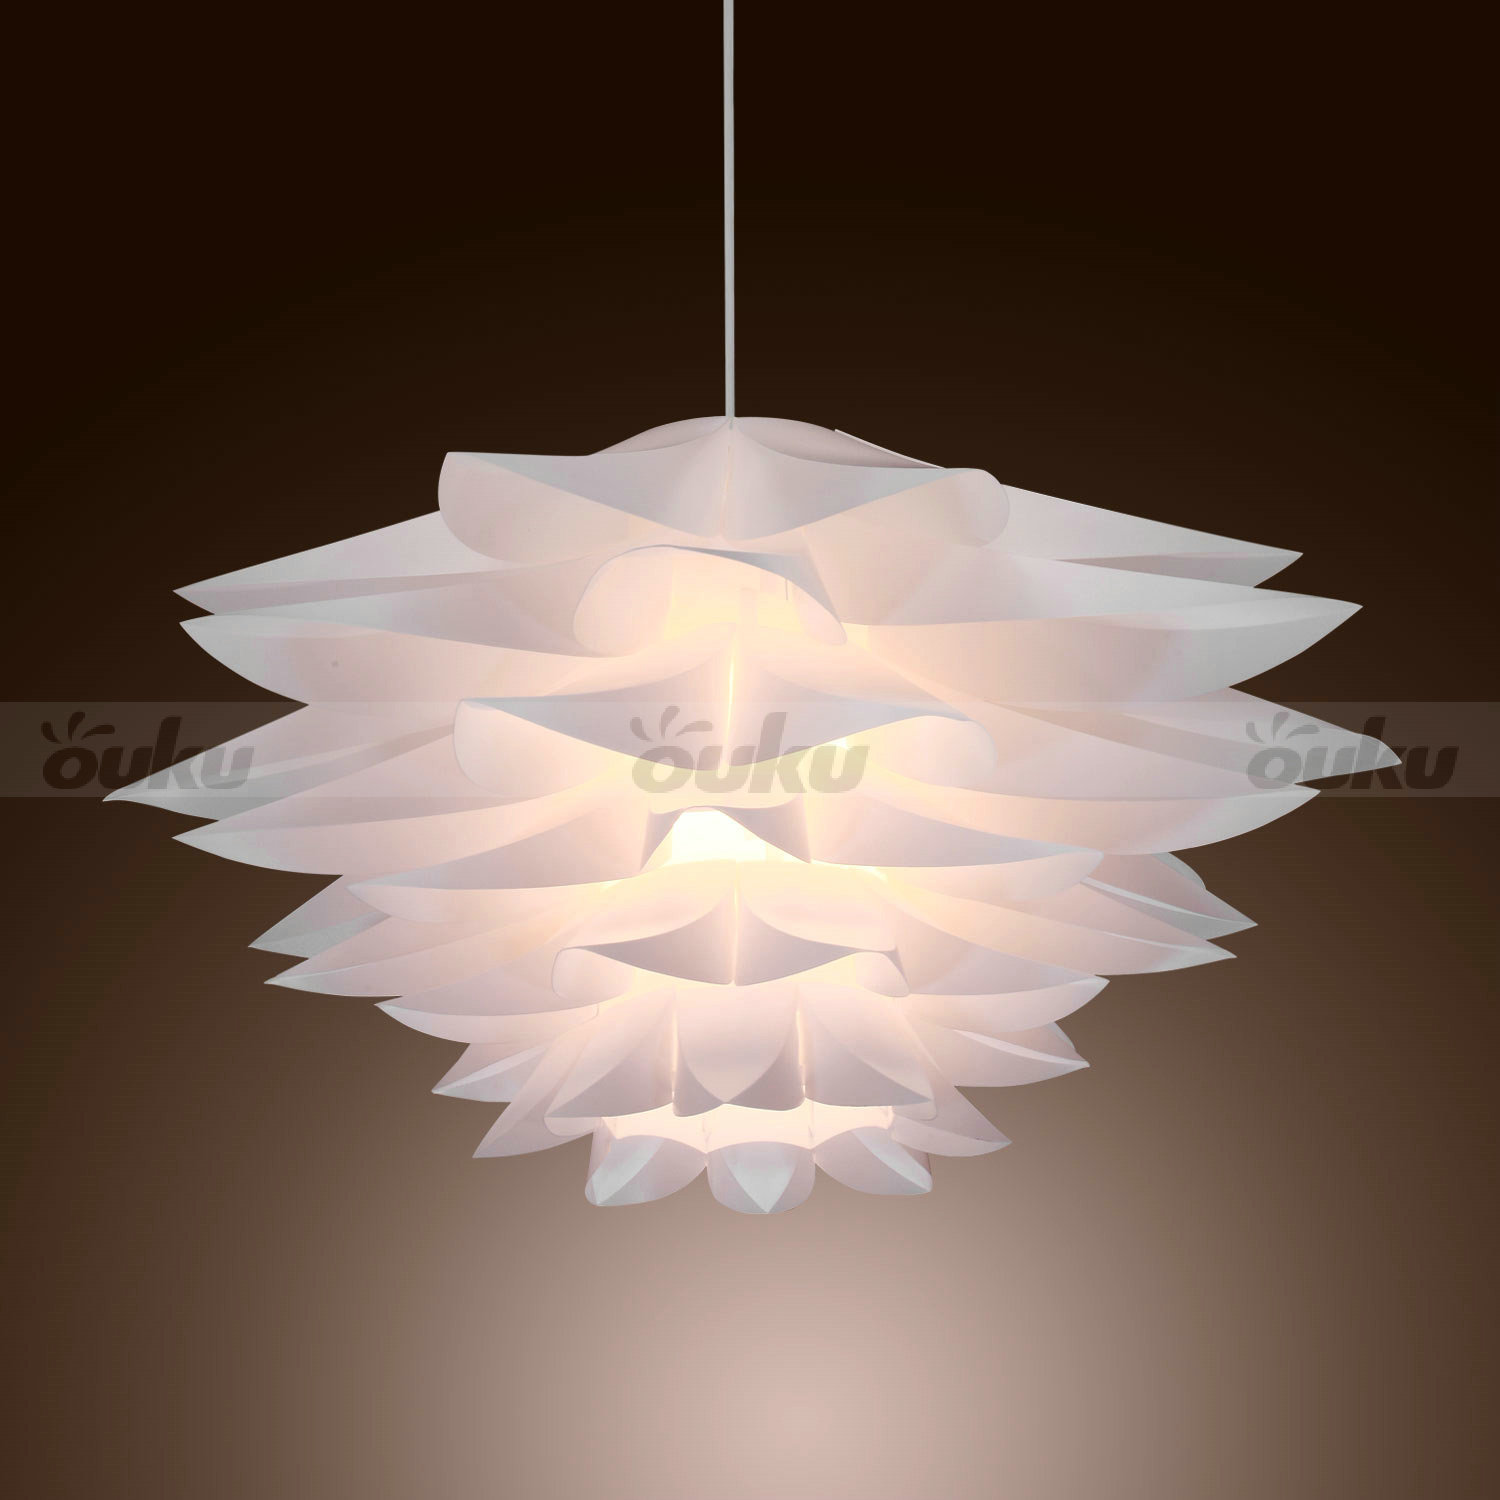 New modern white pvc ceiling light pendant lamp living for Modern living room ceiling lights